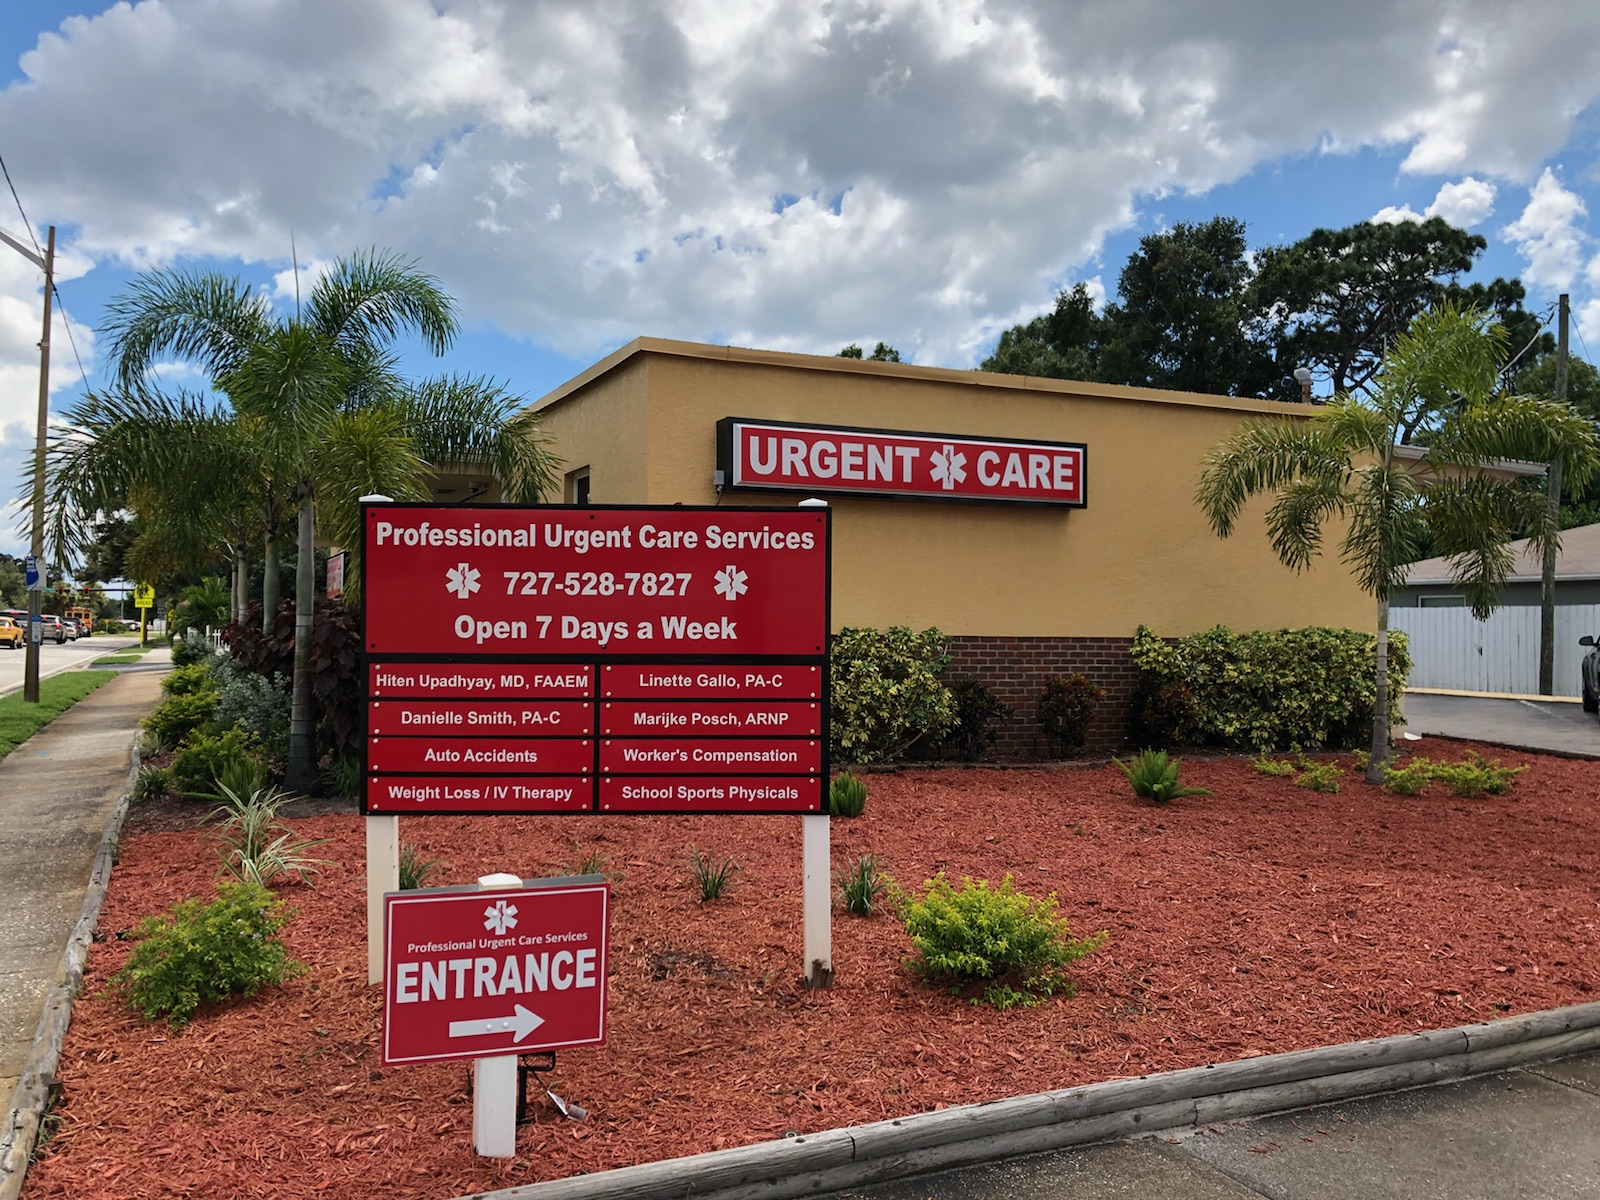 Professional Urgent Care Services - Urgent Care Solv in Saint Petersburg, FL